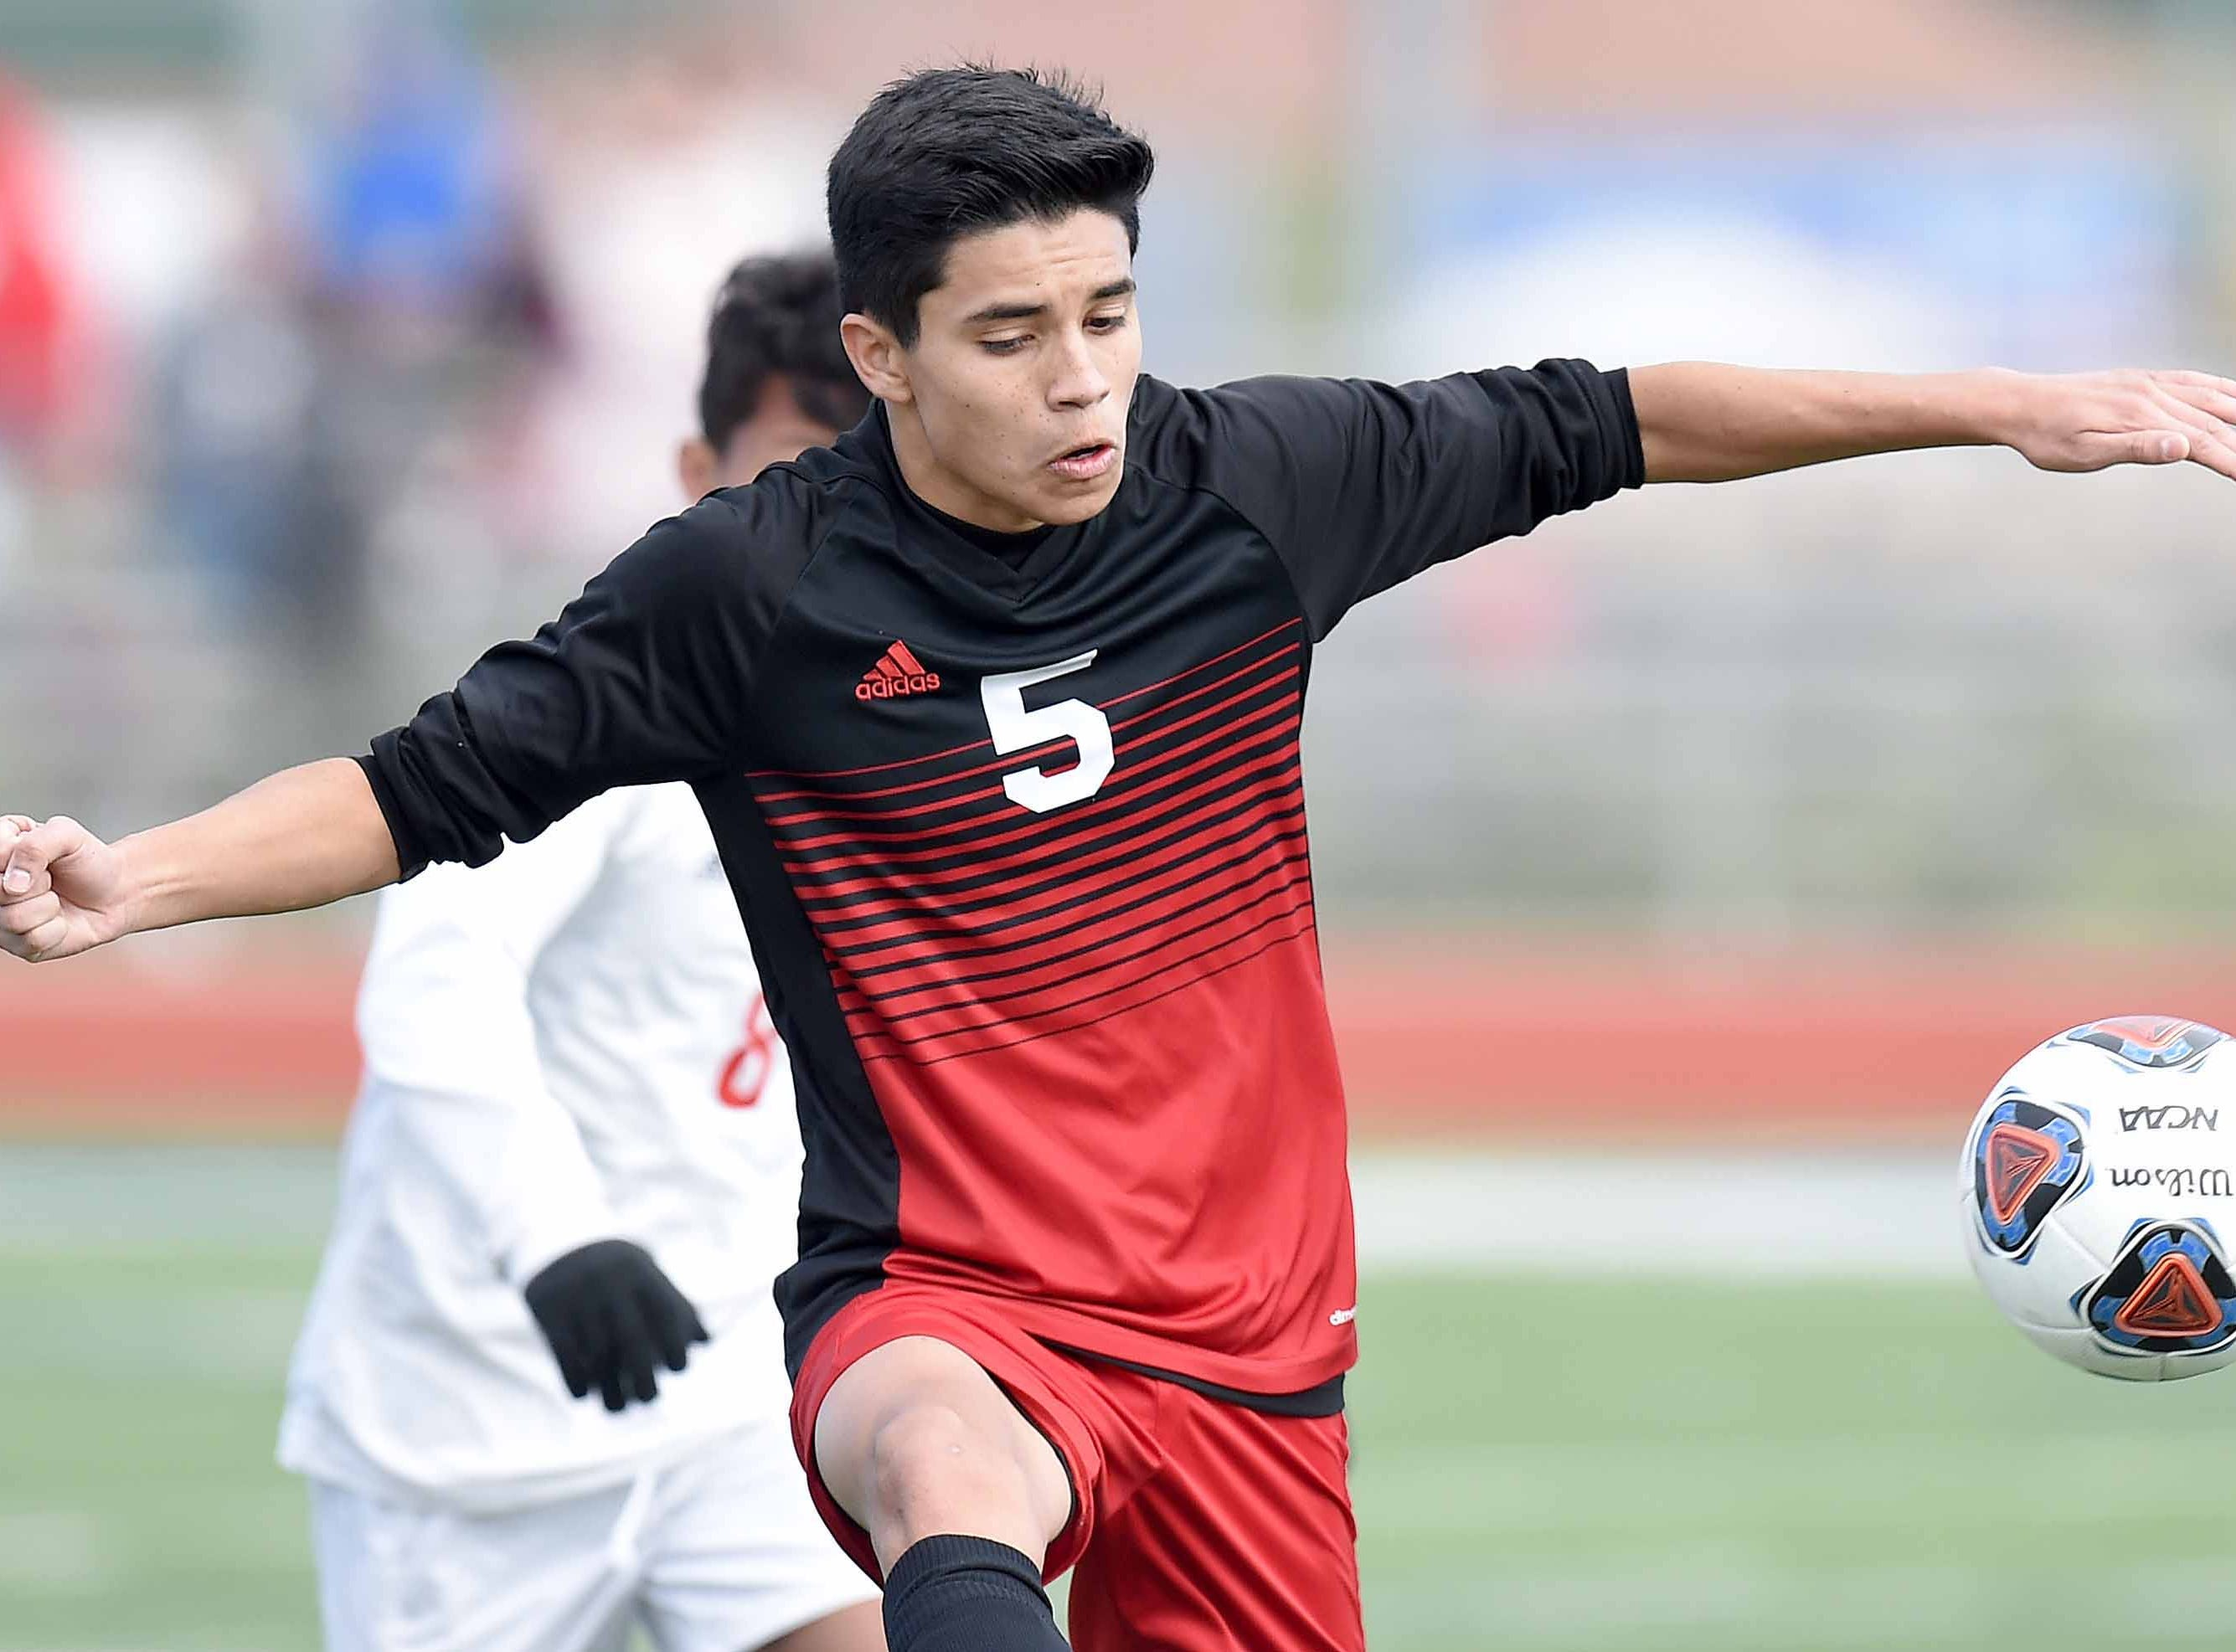 West Lauderdale's Daniel Galvan (5) intercepts a Richland pass in the Class 4A state championship in the MHSAA BlueCross Blue Shield of Mississippi Soccer Classic on Saturday, February 9, 2019, at Ridgeland High School in Ridgeland, Miss.